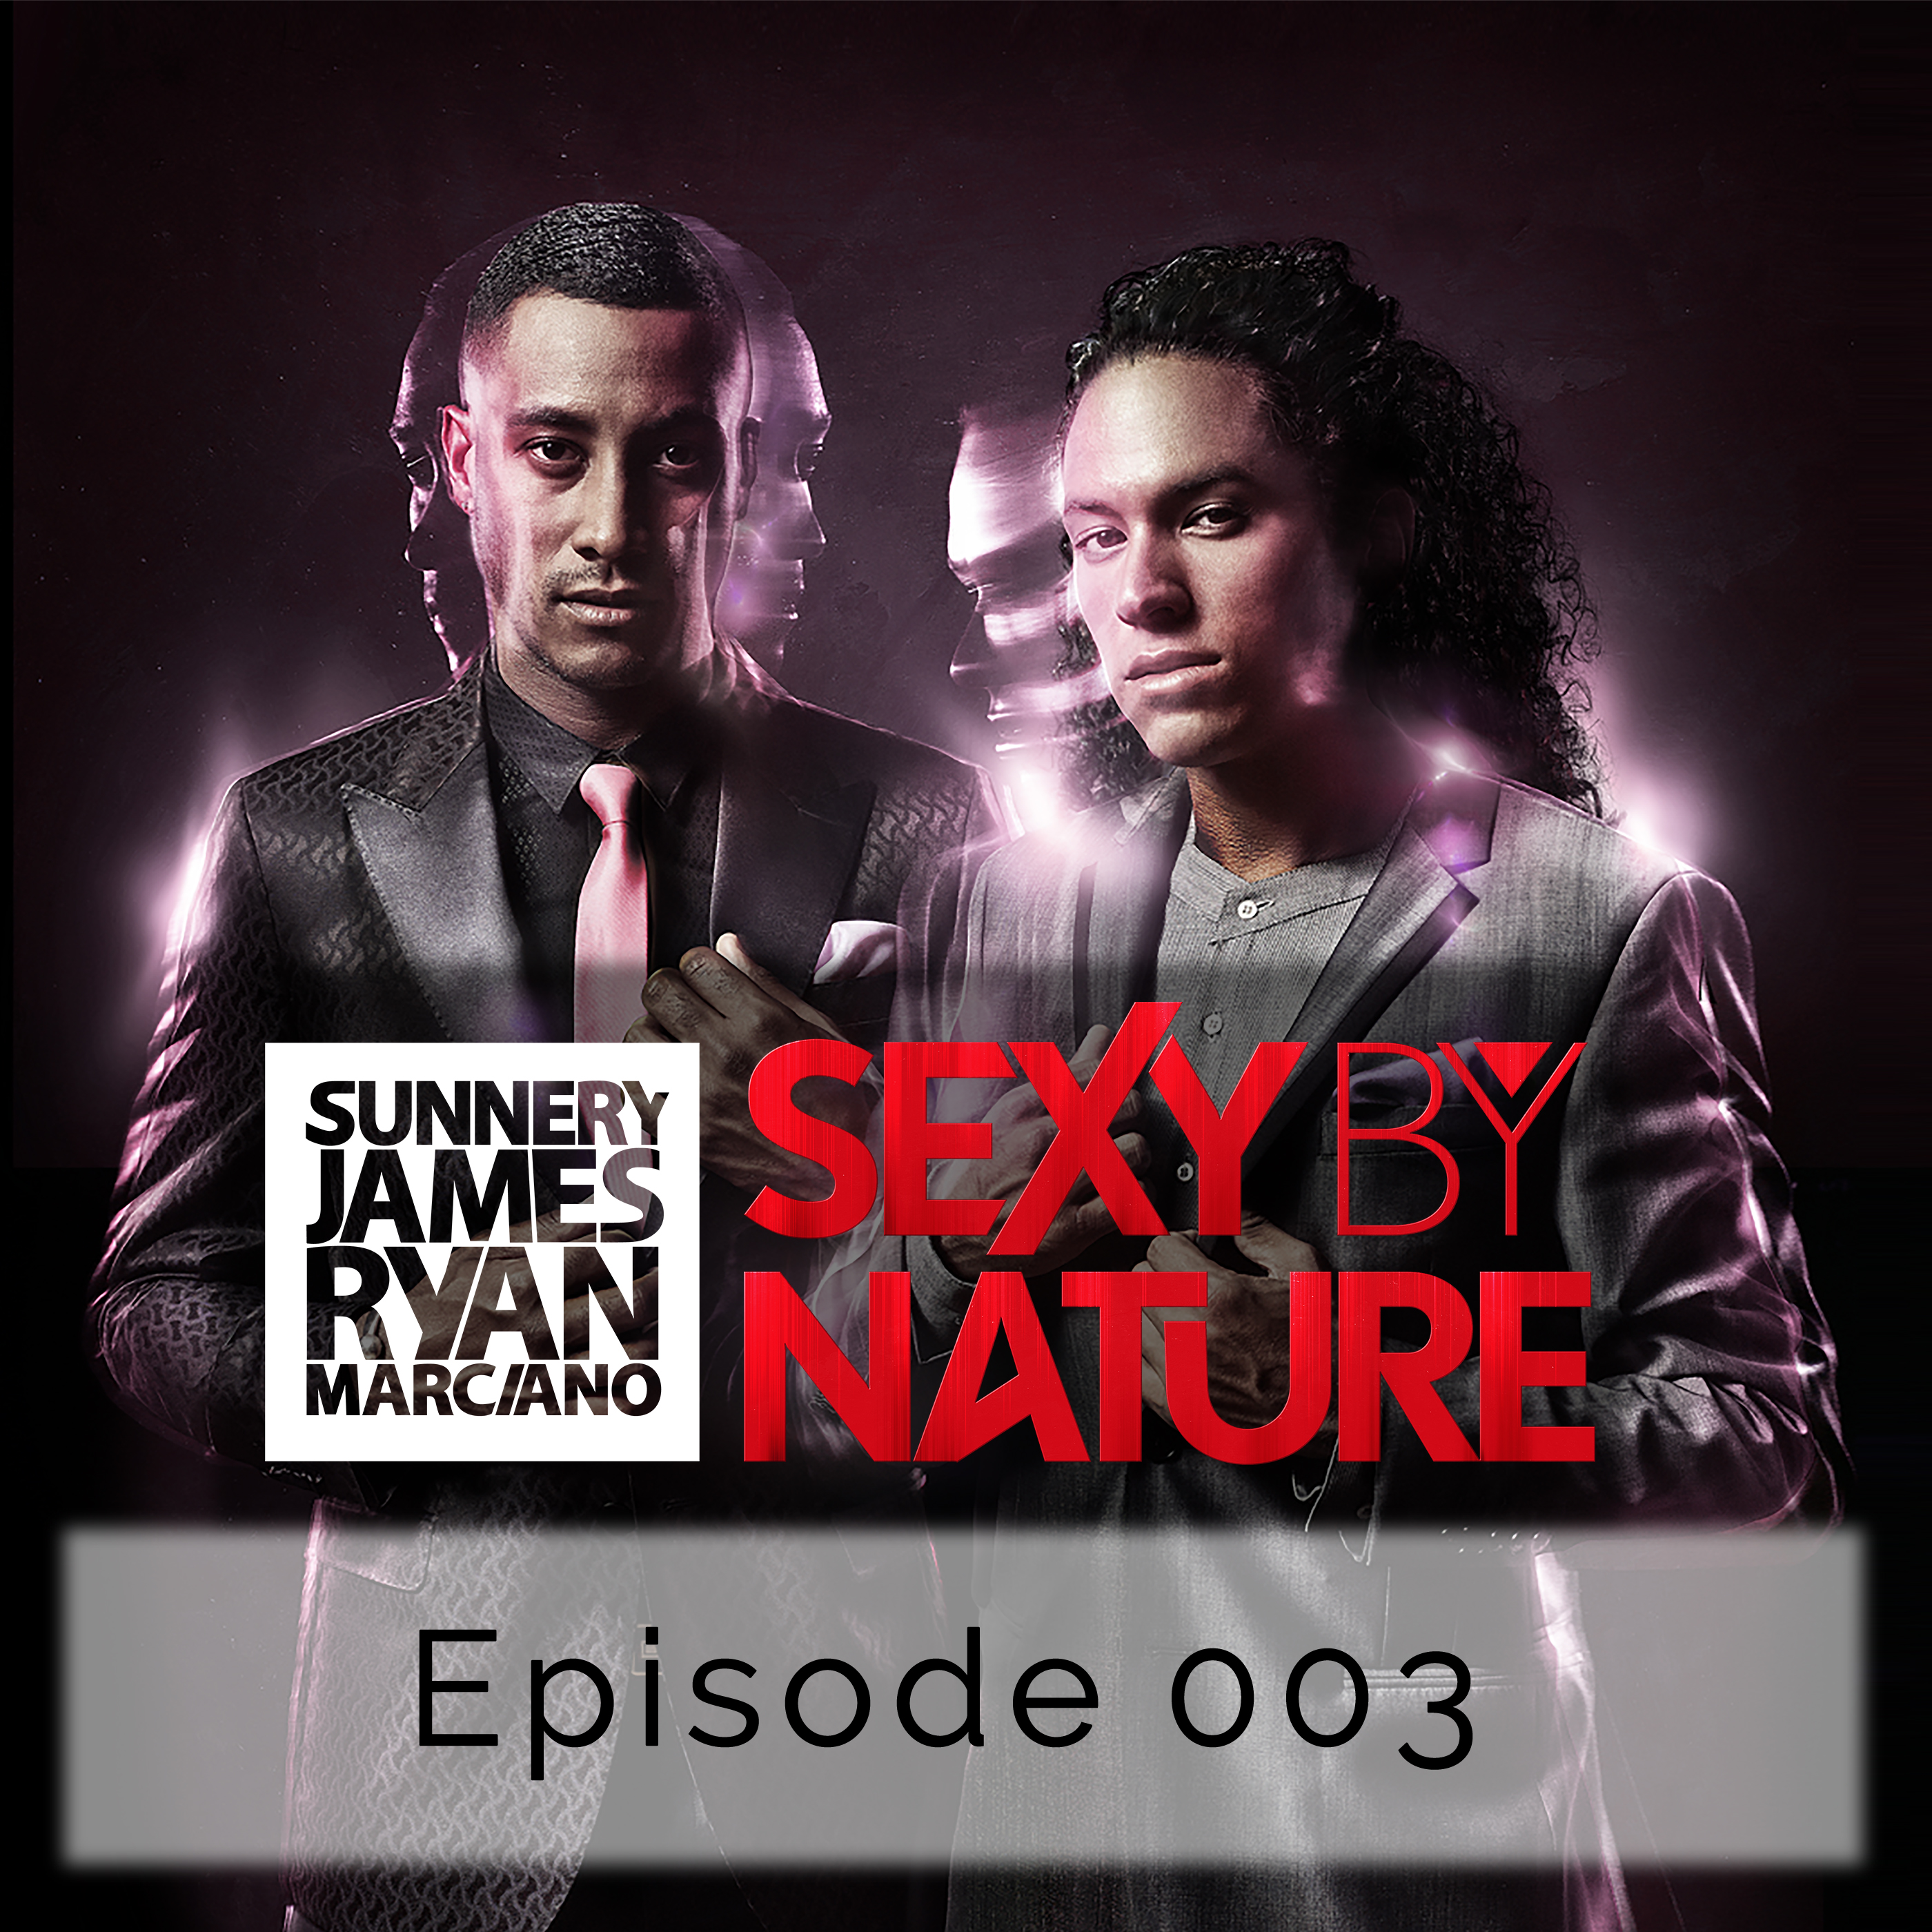 Sexy By Nature with Sunnery James & Ryan Marciano - Episode 003